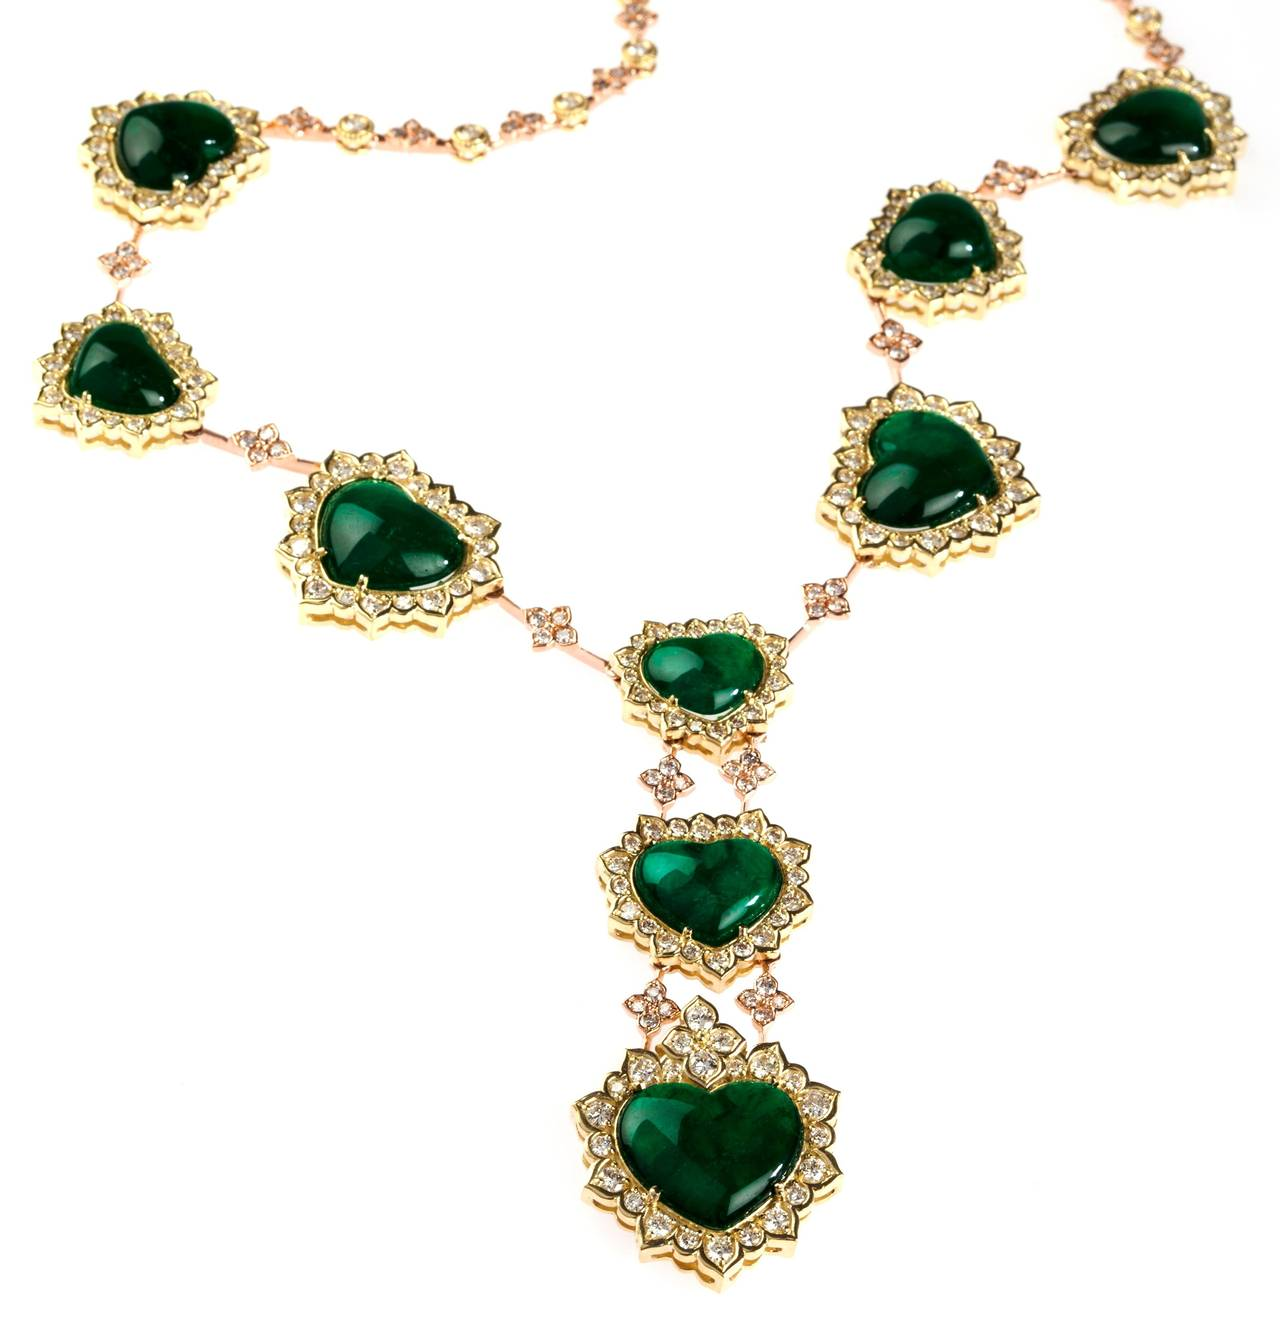 Stambolian Emerald Diamond Gold Necklace For Sale at 1stdibs